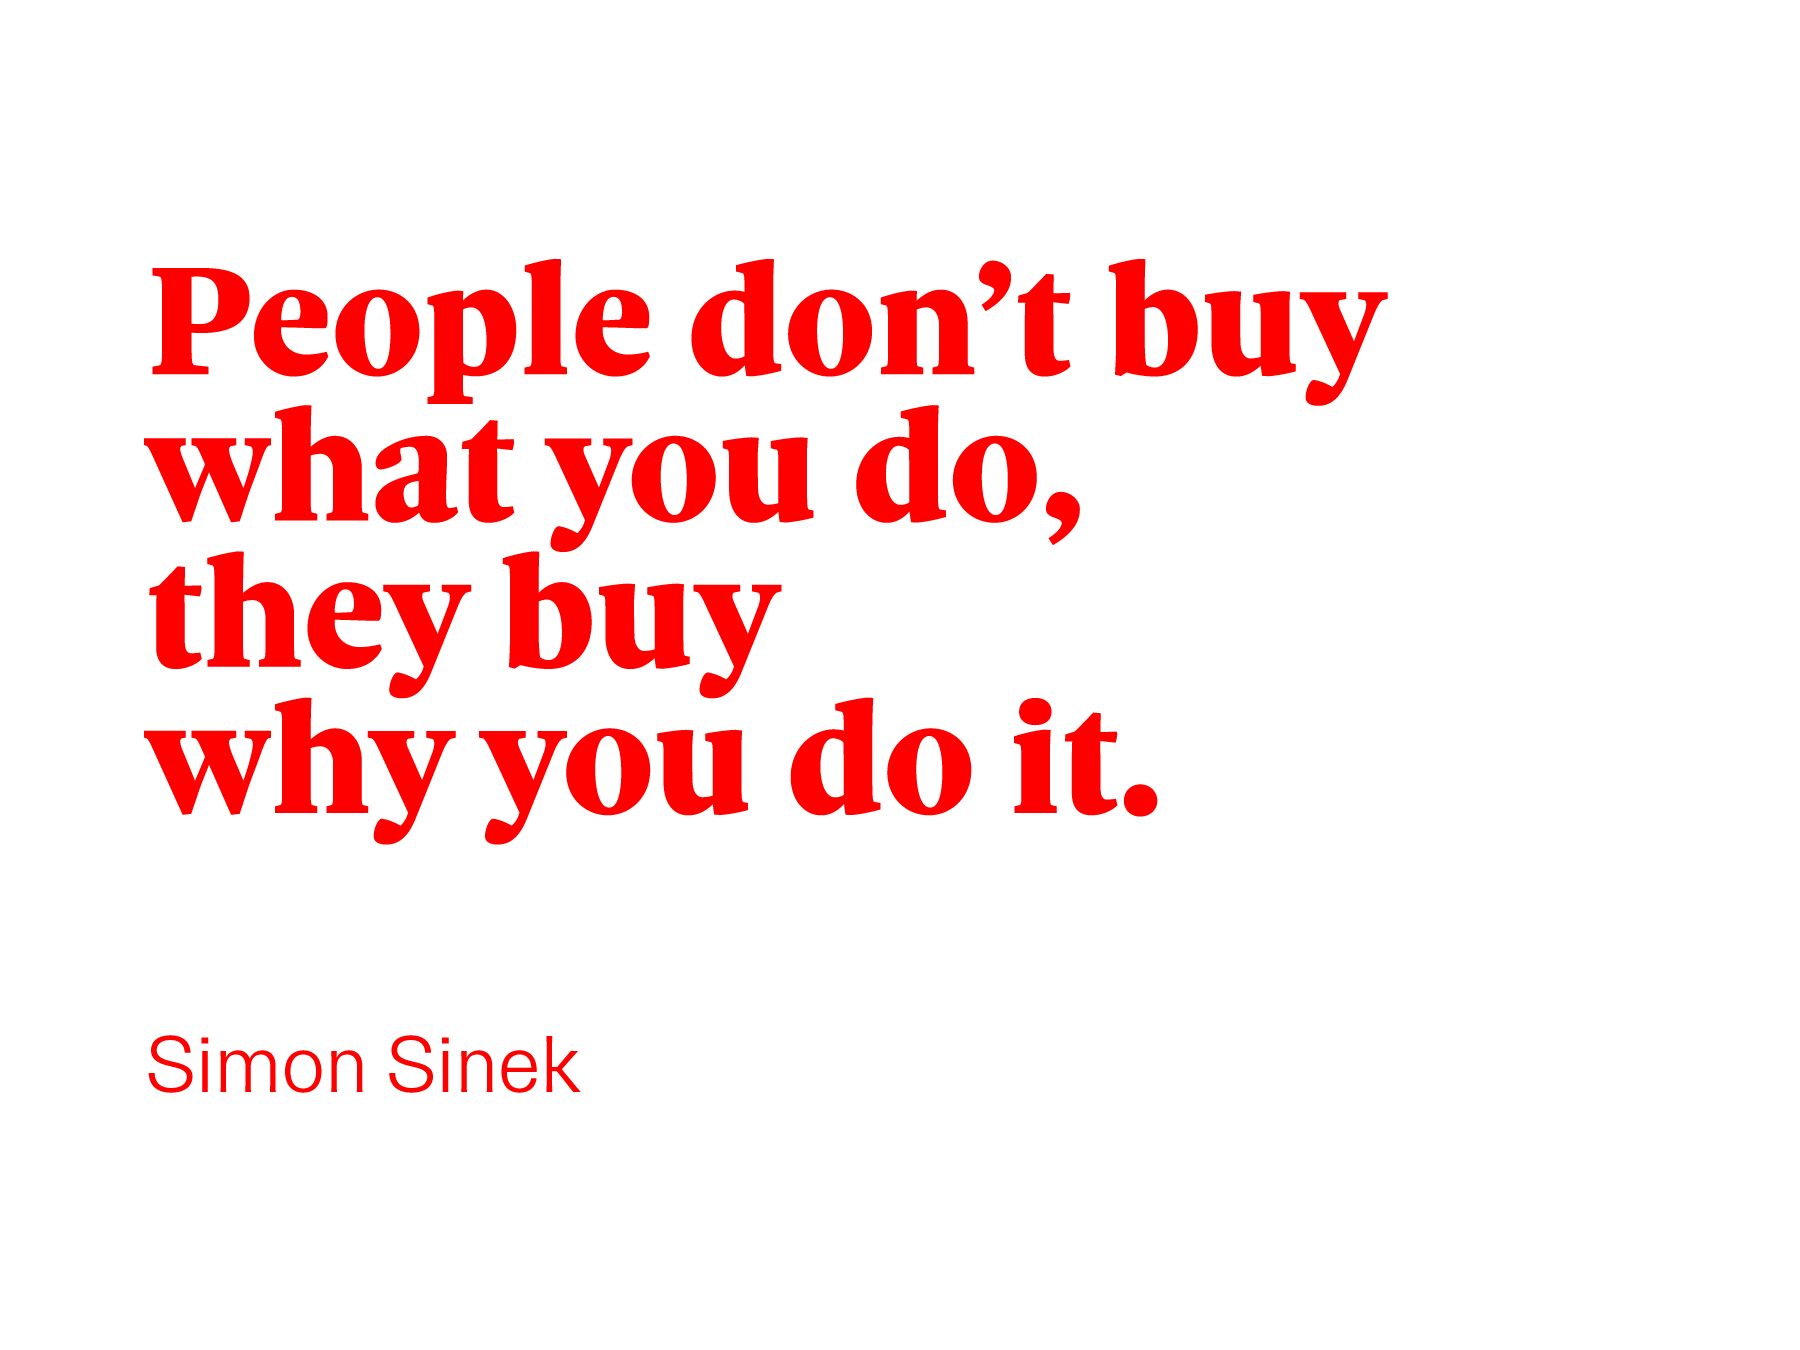 People don't buy what you do, they buy why you do it. Simon Sinek